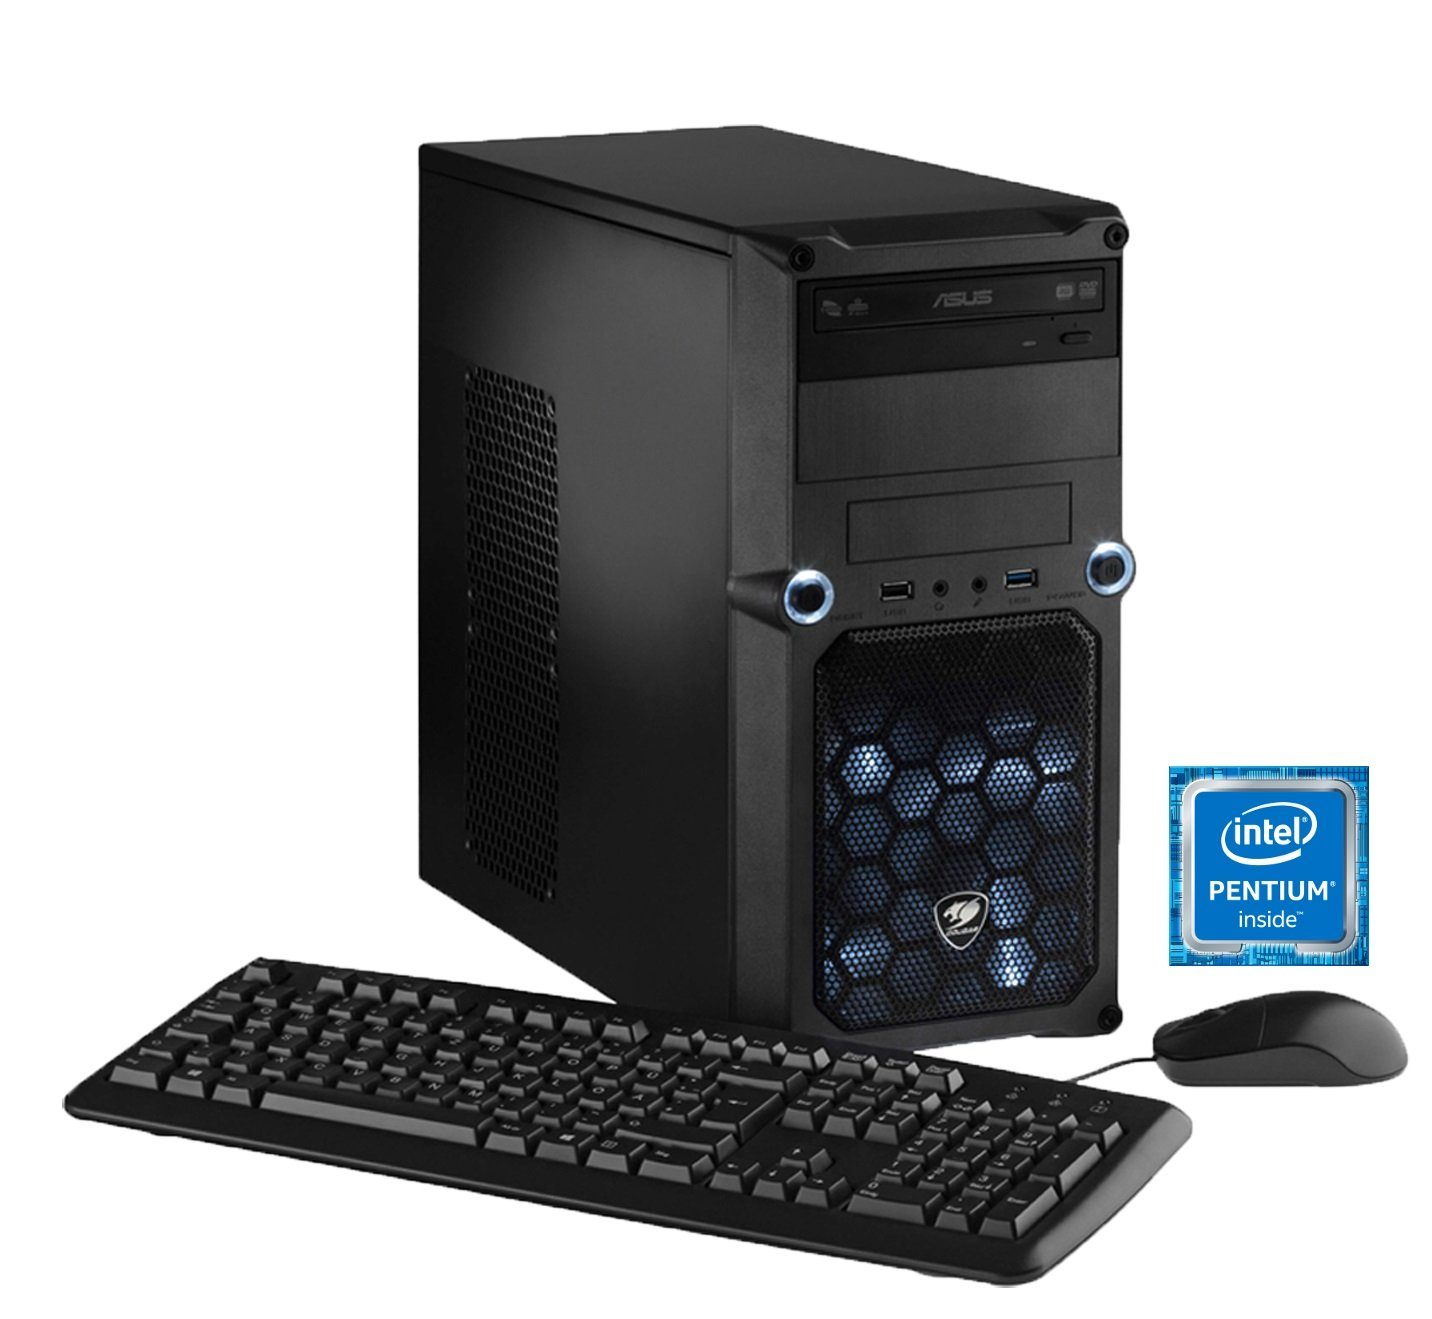 Hyrican Multimedia PC Intel® Pentium® G4400, 8GB, 1TB, Windows 10 »Multimedia 5265«